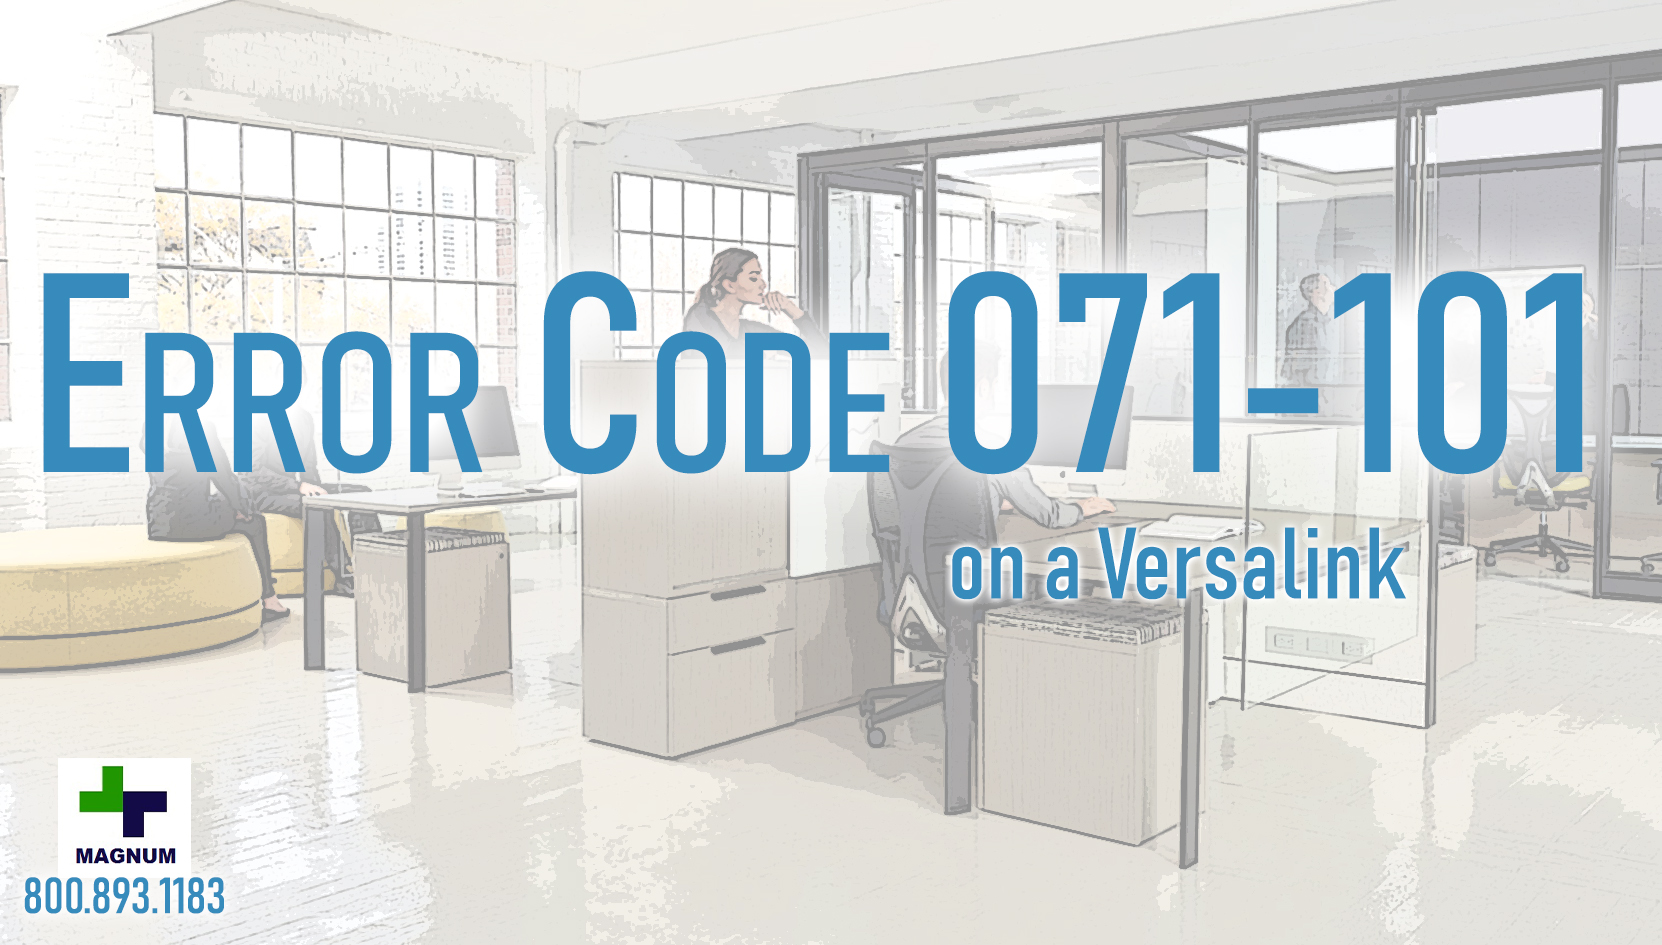 Xerox Versalink C405 - Error Code - 071-101 | USA Copier Lease